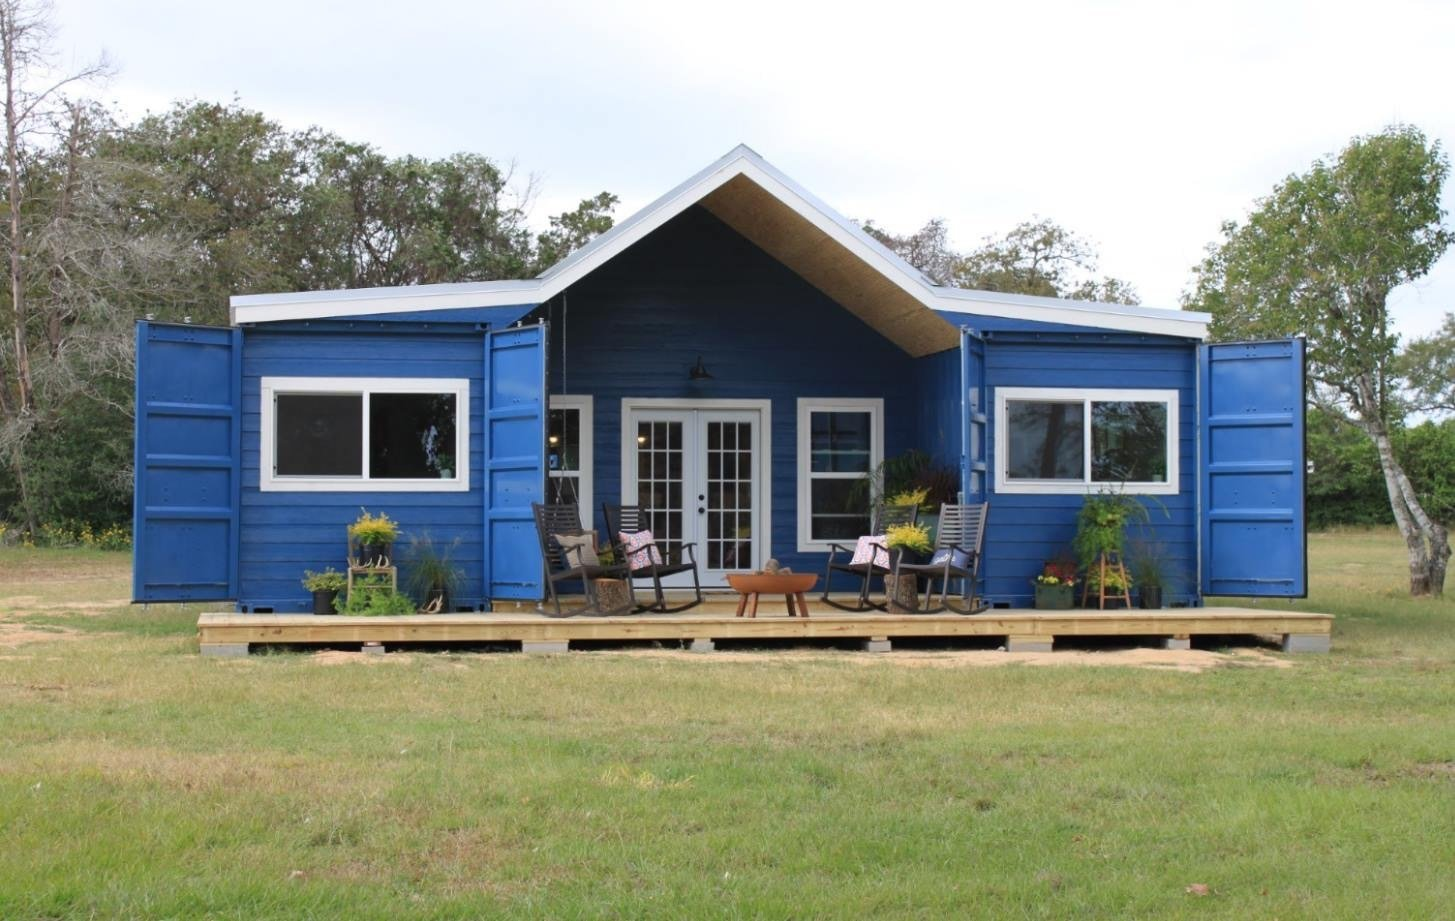 Backcountry Containers shipping container home exterior